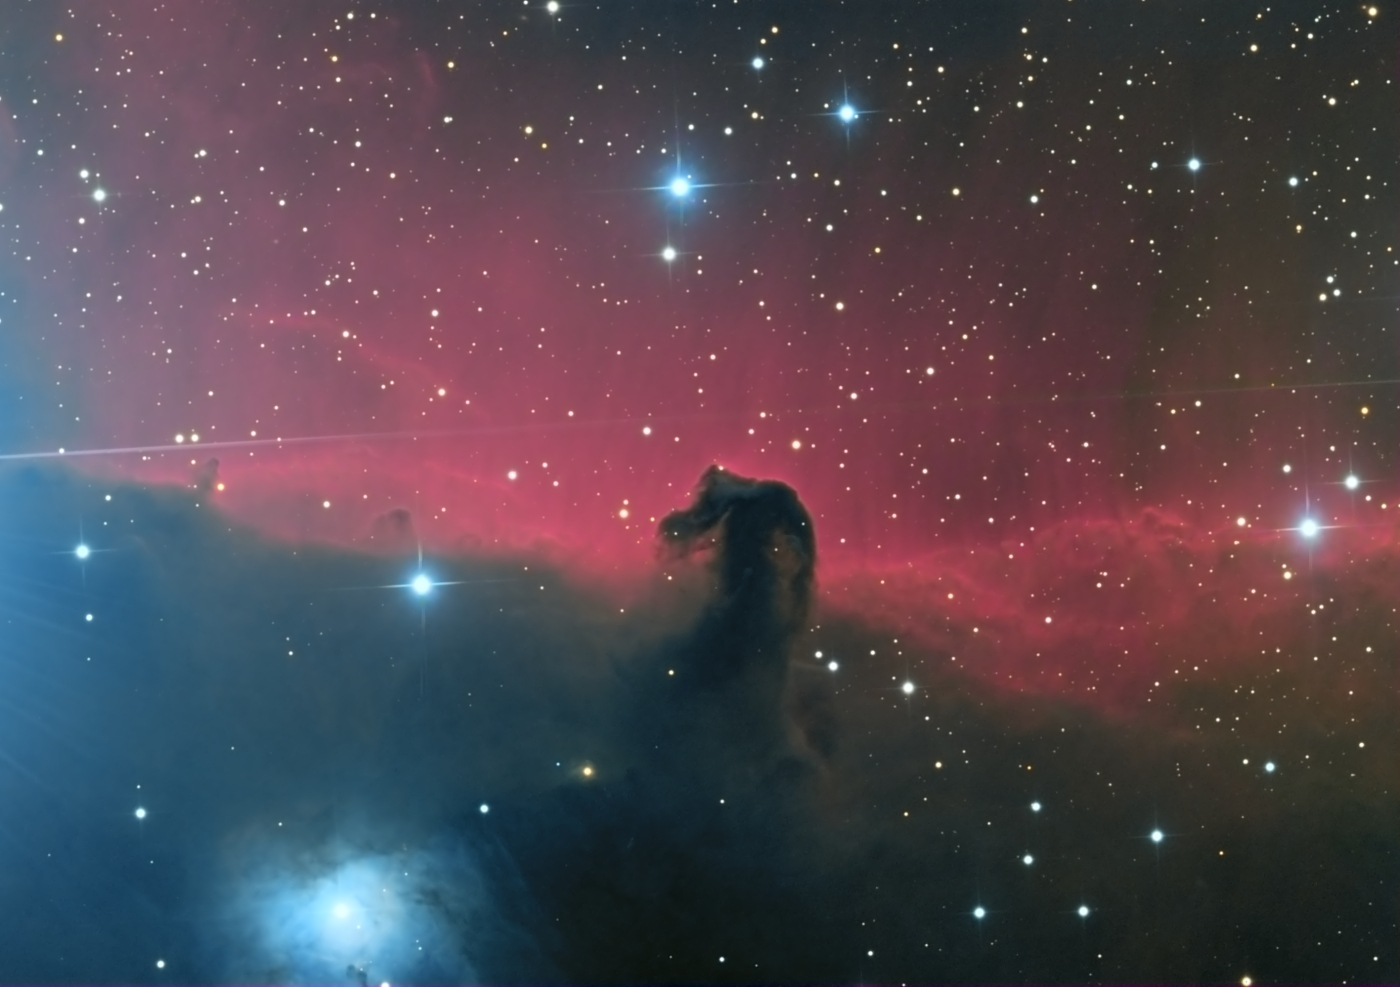 horsehead nebula pictures - HD1809×1282